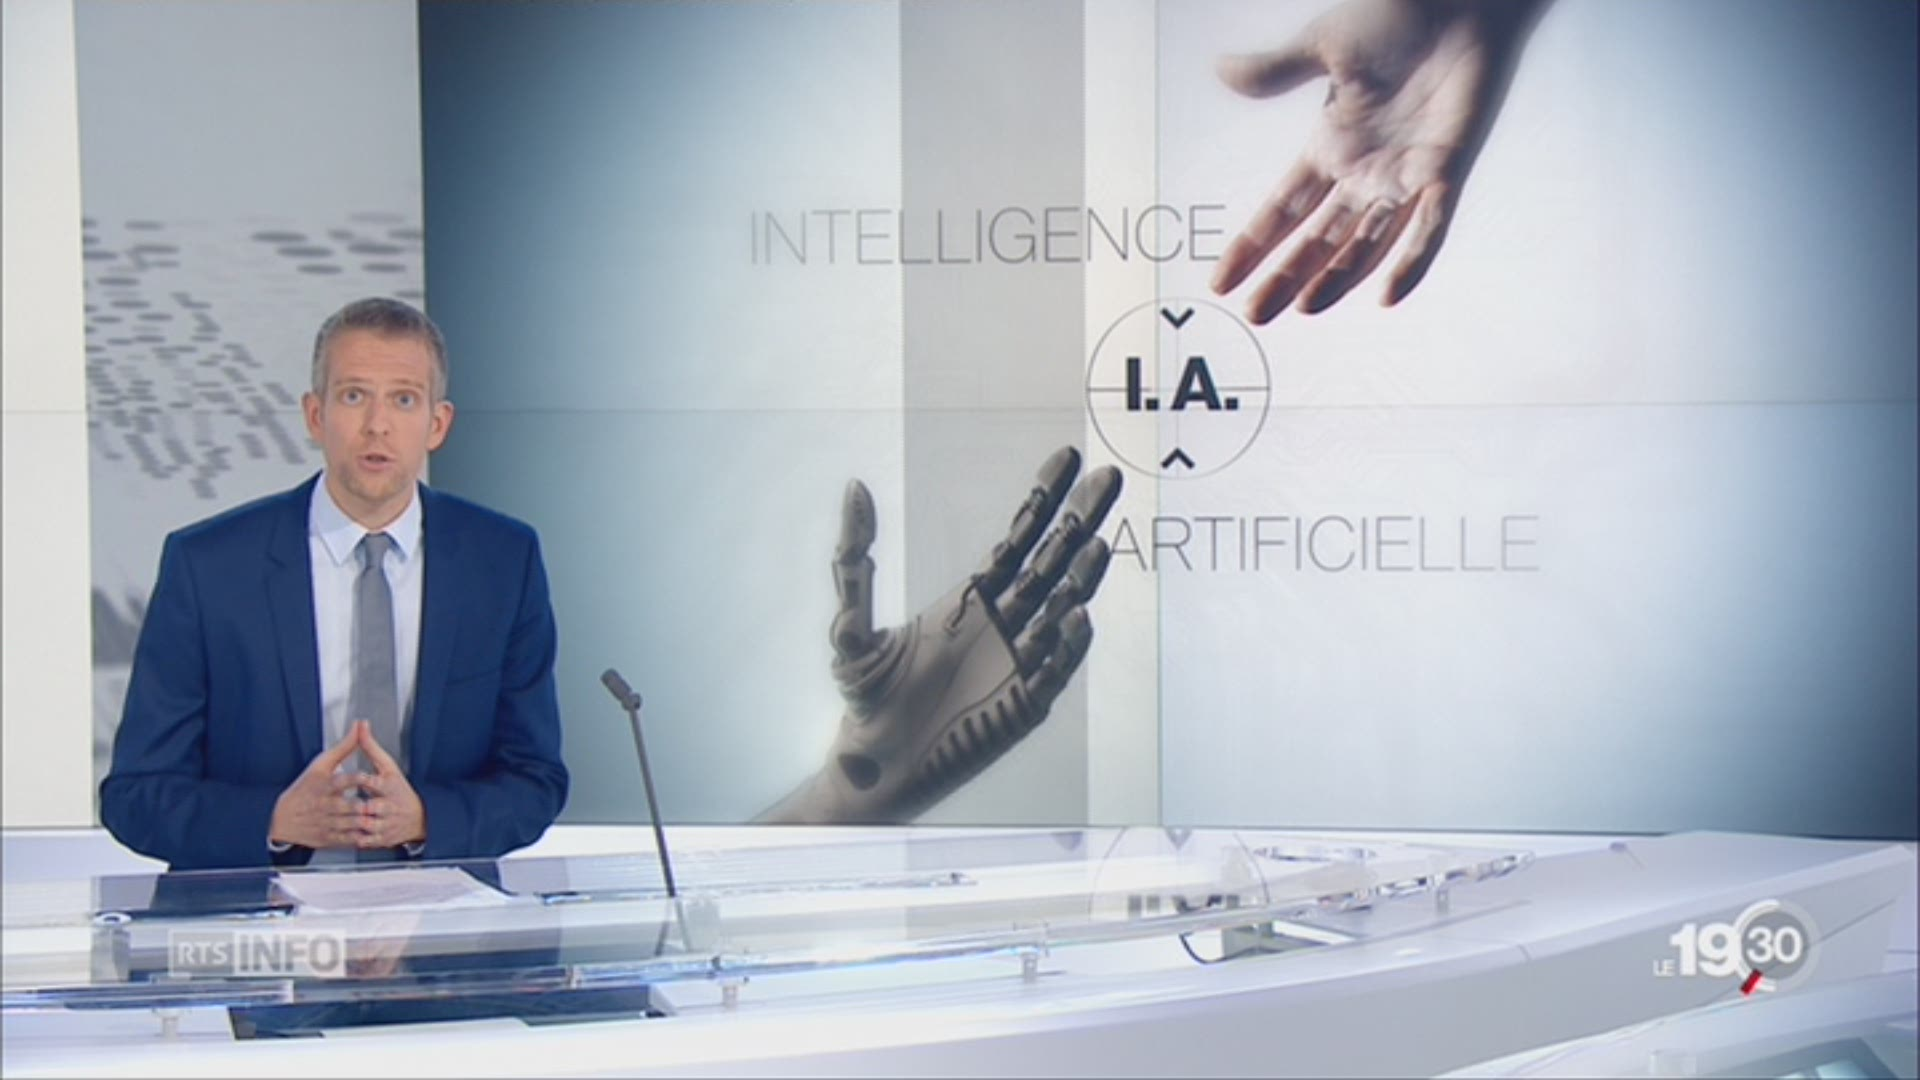 Intelligence artificielle: les explications de Gaspard Kühn (1-2)